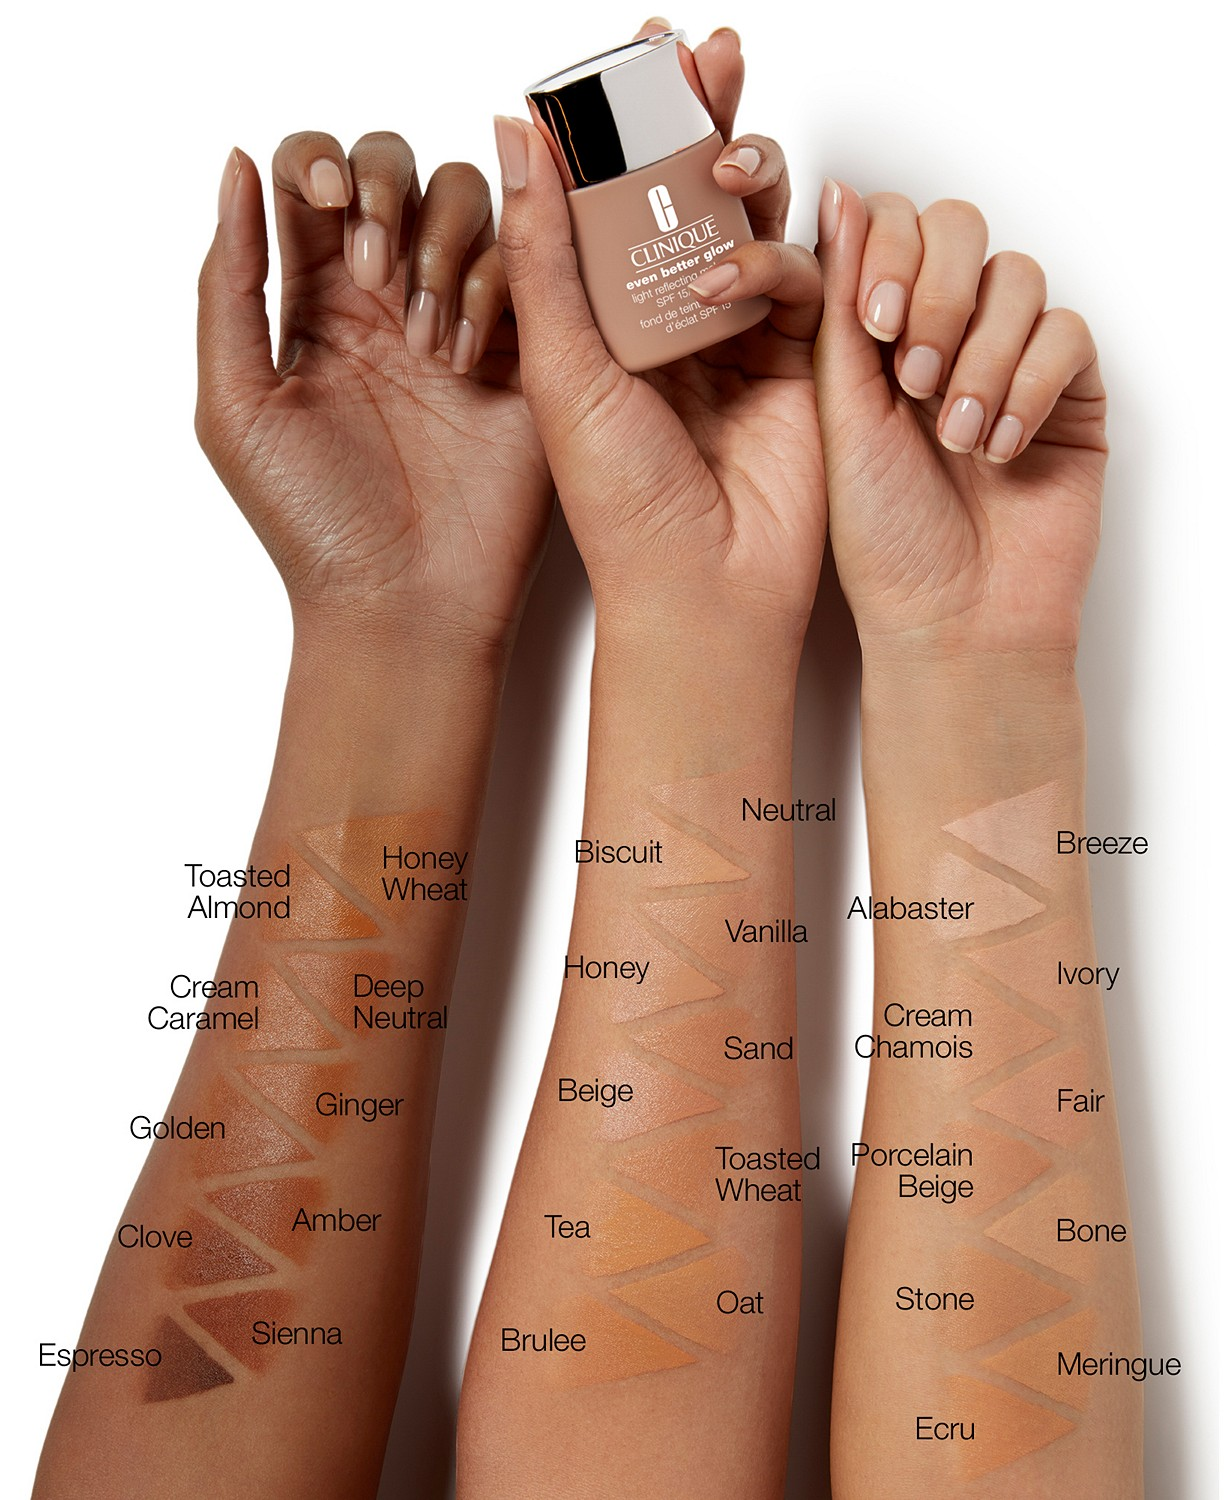 Even Better Glow Light Reflecting Makeup by Clinique #3